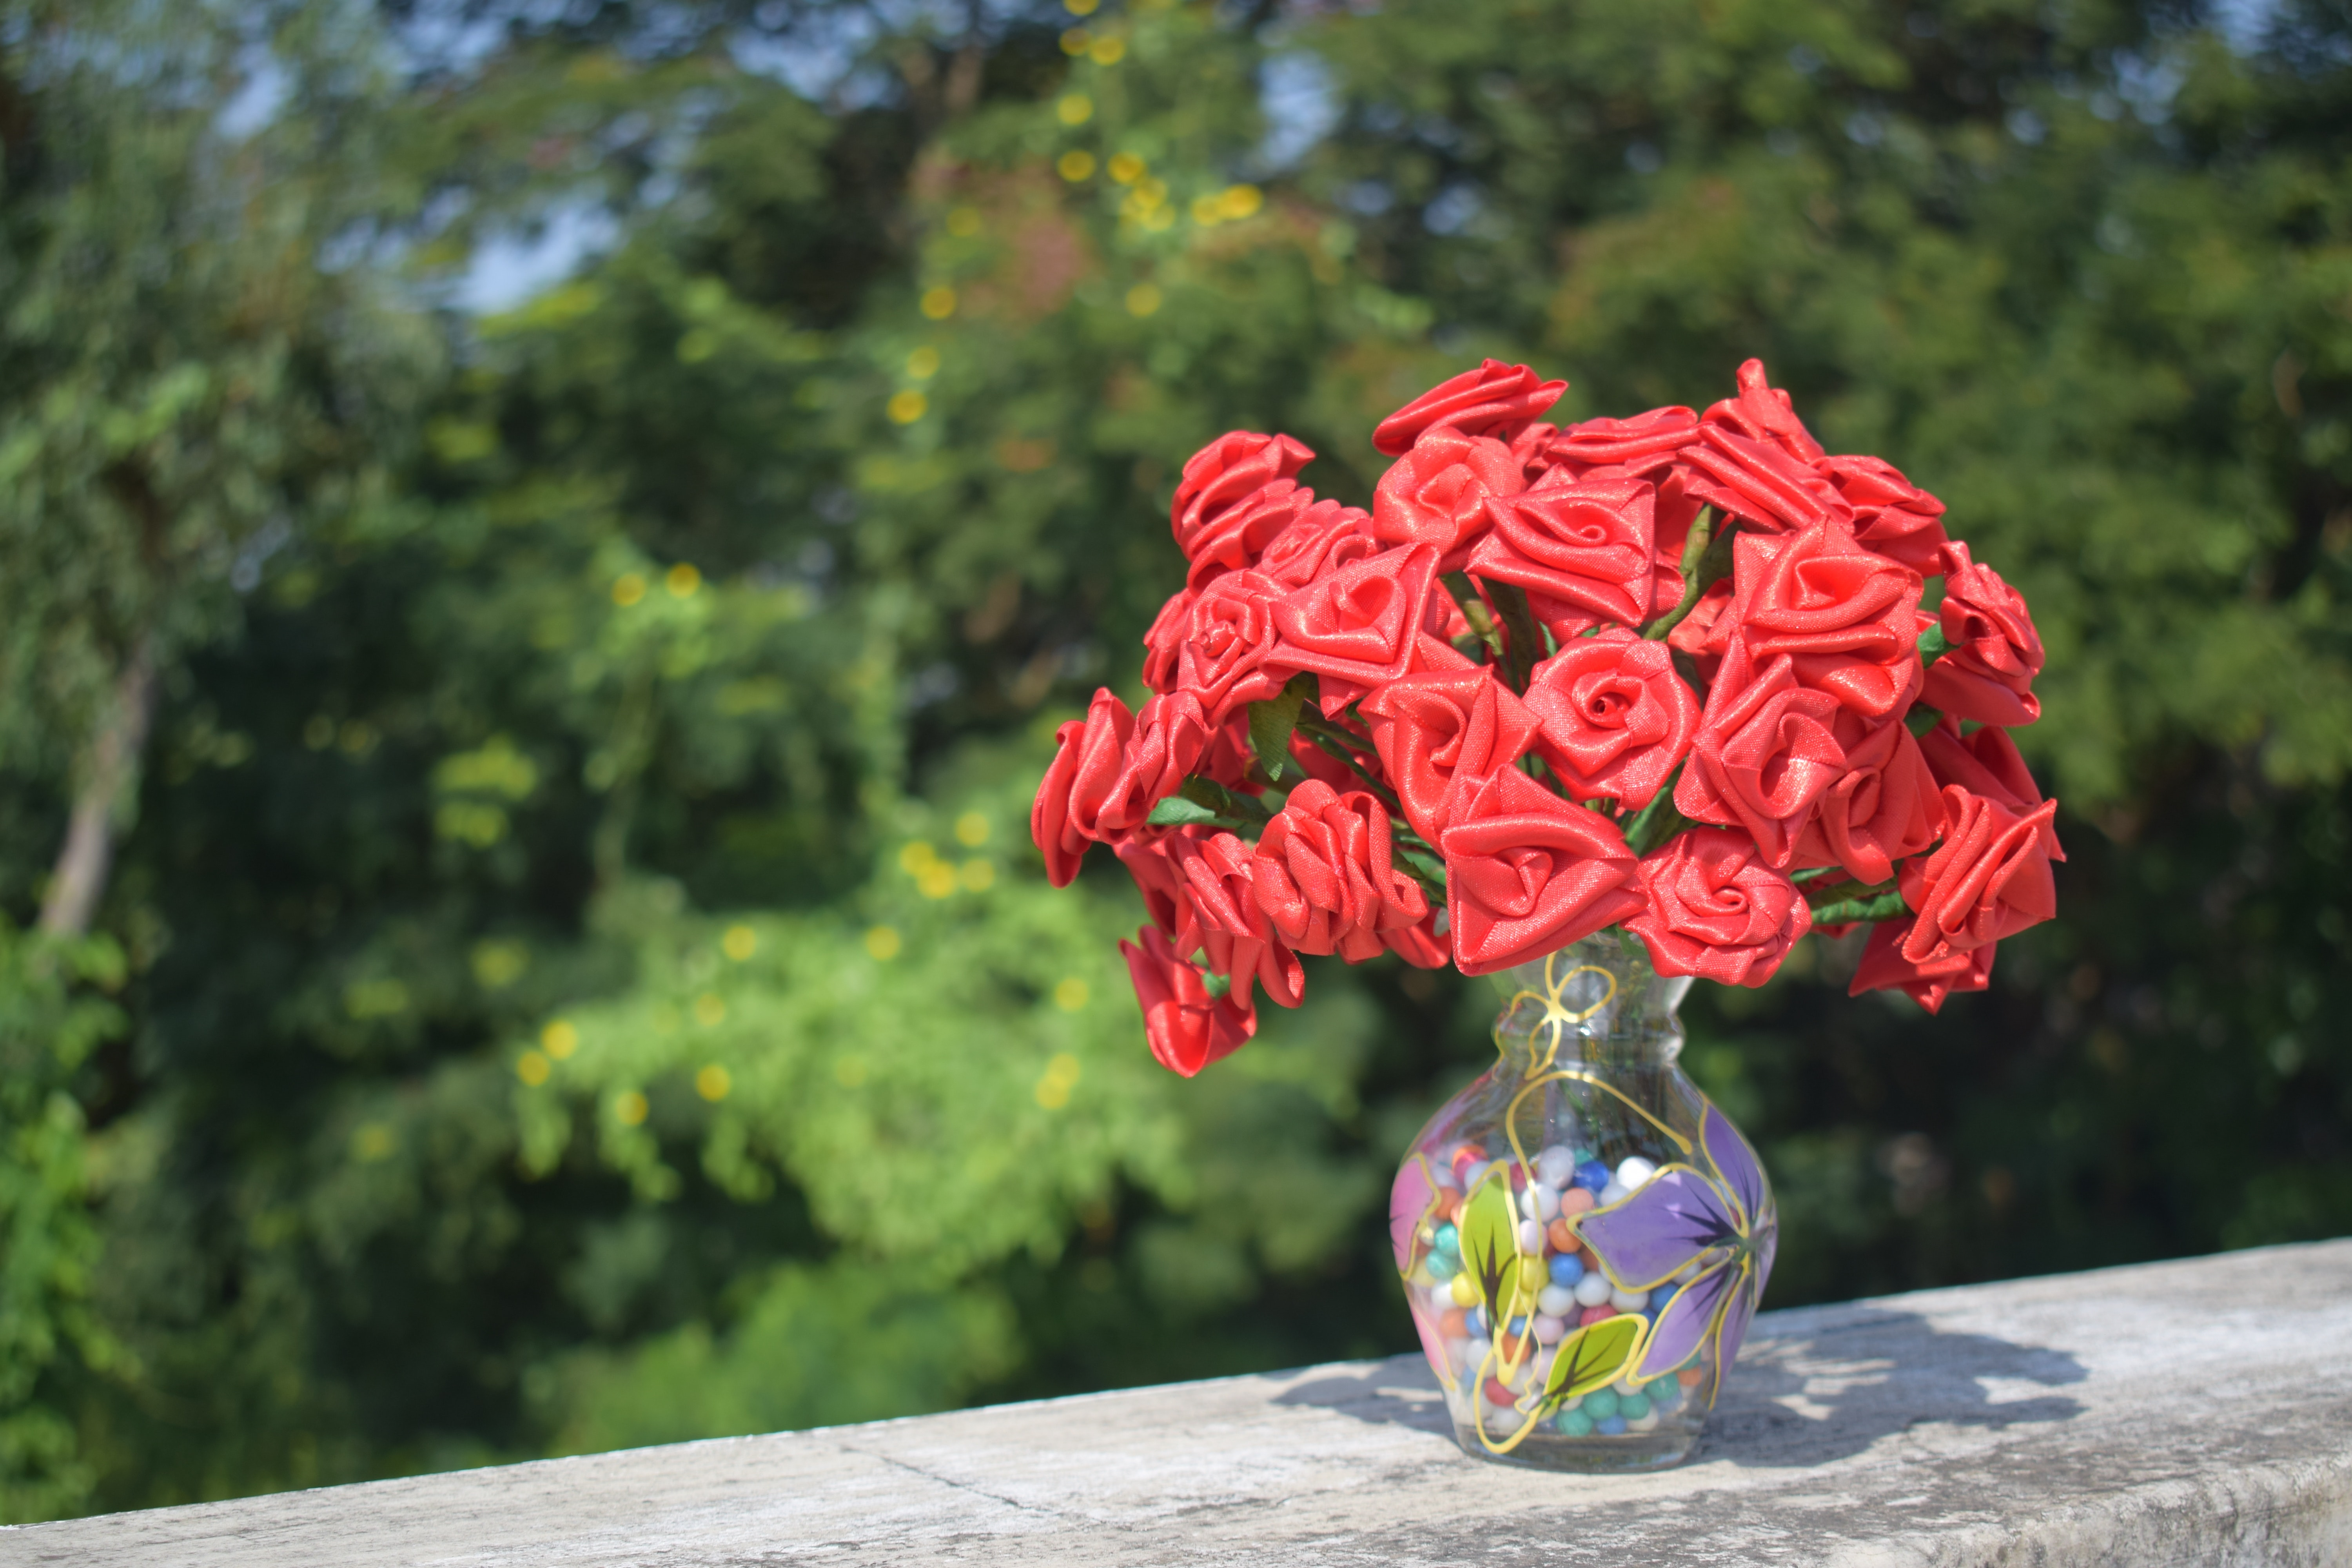 Artificial Roses in Clear Glass Vase on Concrete Surface, Petals, Outdoors, Nature, Plants, HQ Photo